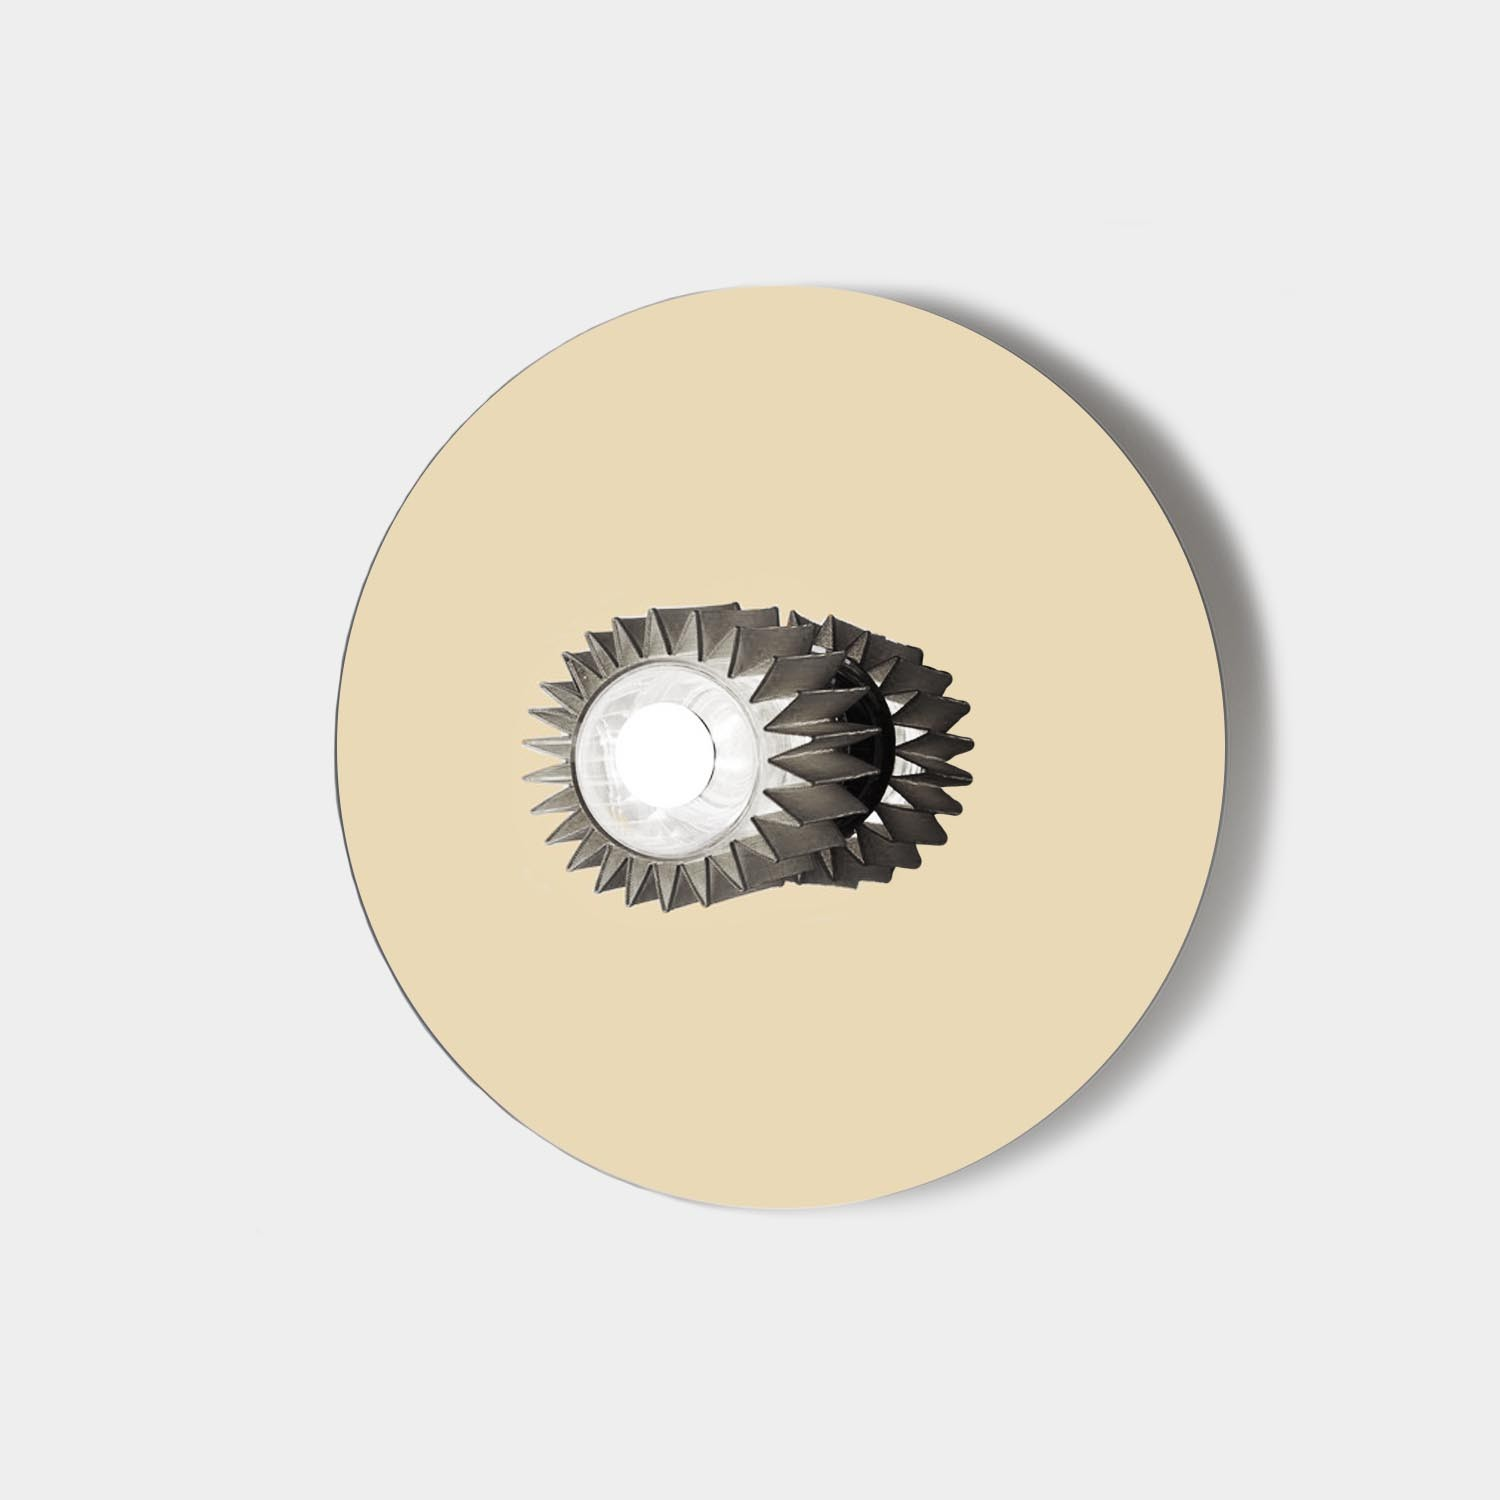 IN THE SUN Ceiling/Wall Sconce 380